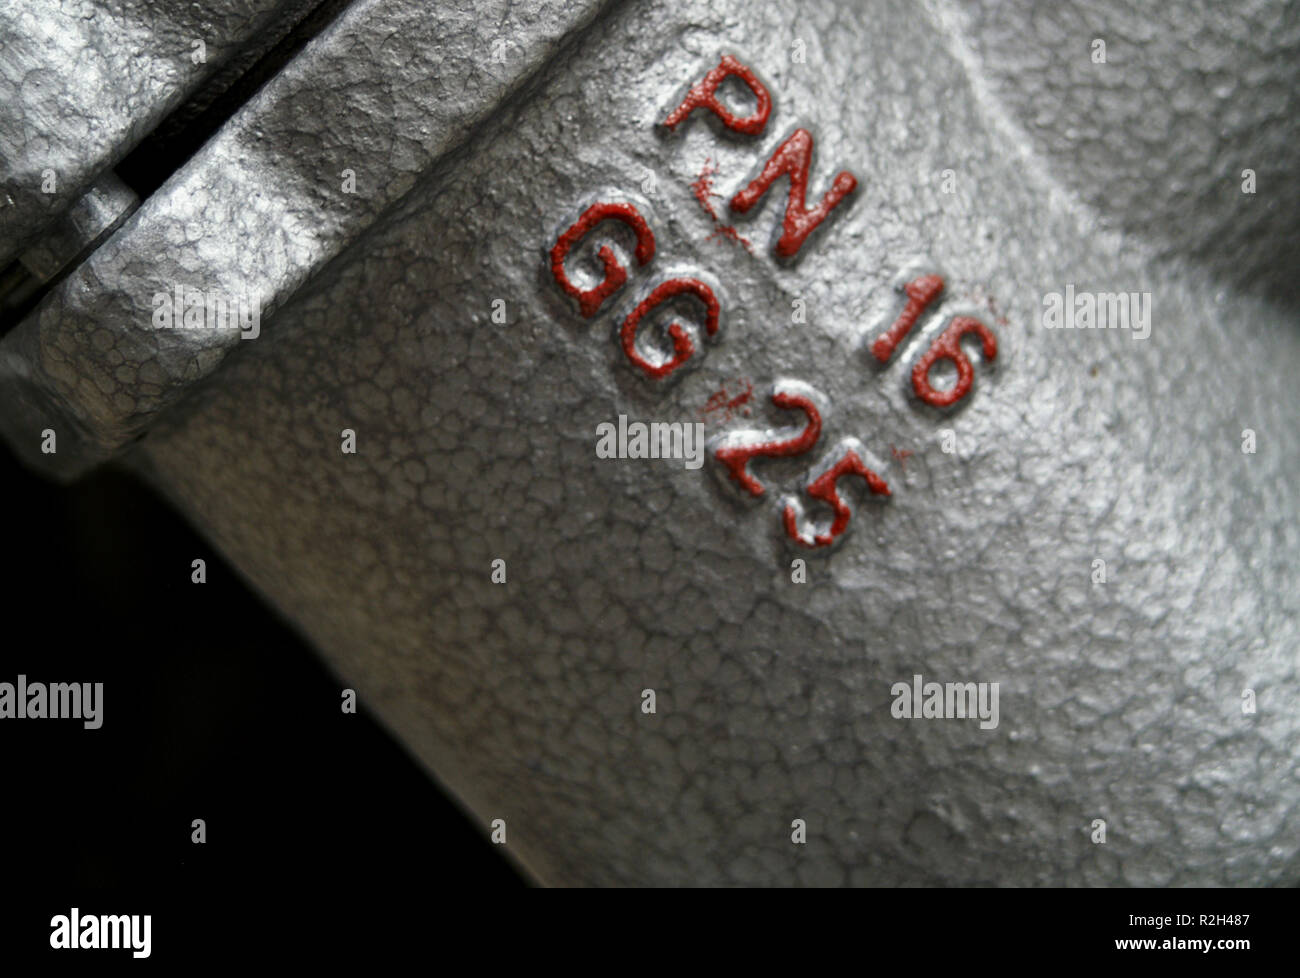 cast iron - gg25 Stock Photo: 225340647 - Alamy